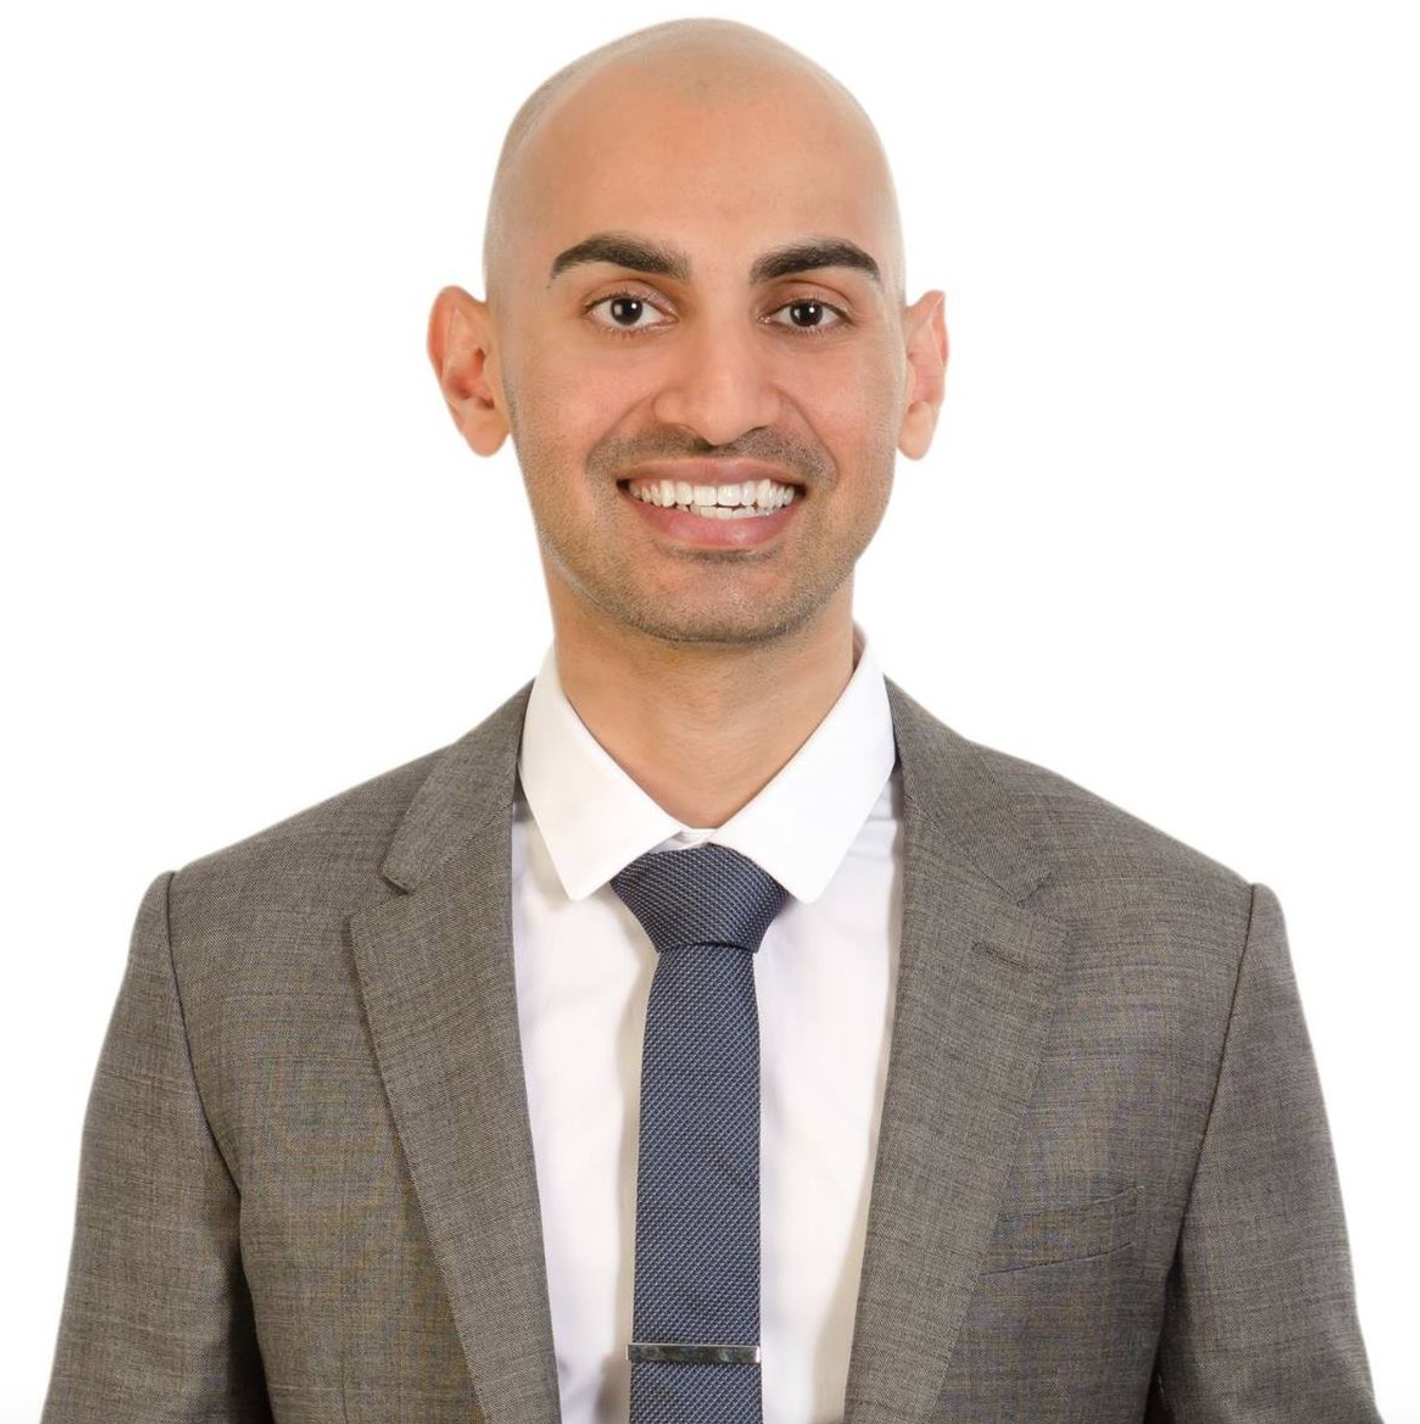 "Professional Photo of Patel. <span data-mce-style=""color: #71b8e4;"" style=""color: #71b8e4;""><a class=""tooltippableCarat"" data-cited_by=""ordazdon"" data-citer_is_verified=""1"" data-citer_rank=""Staff"" data-mce-href=""../../../../neil-patel/35962426/"" data-username=""https://www.facebook.com/neilkpatel/"" href=""../../../../neil-patel/35962426/""><sup>[1]</sup></a></span>"